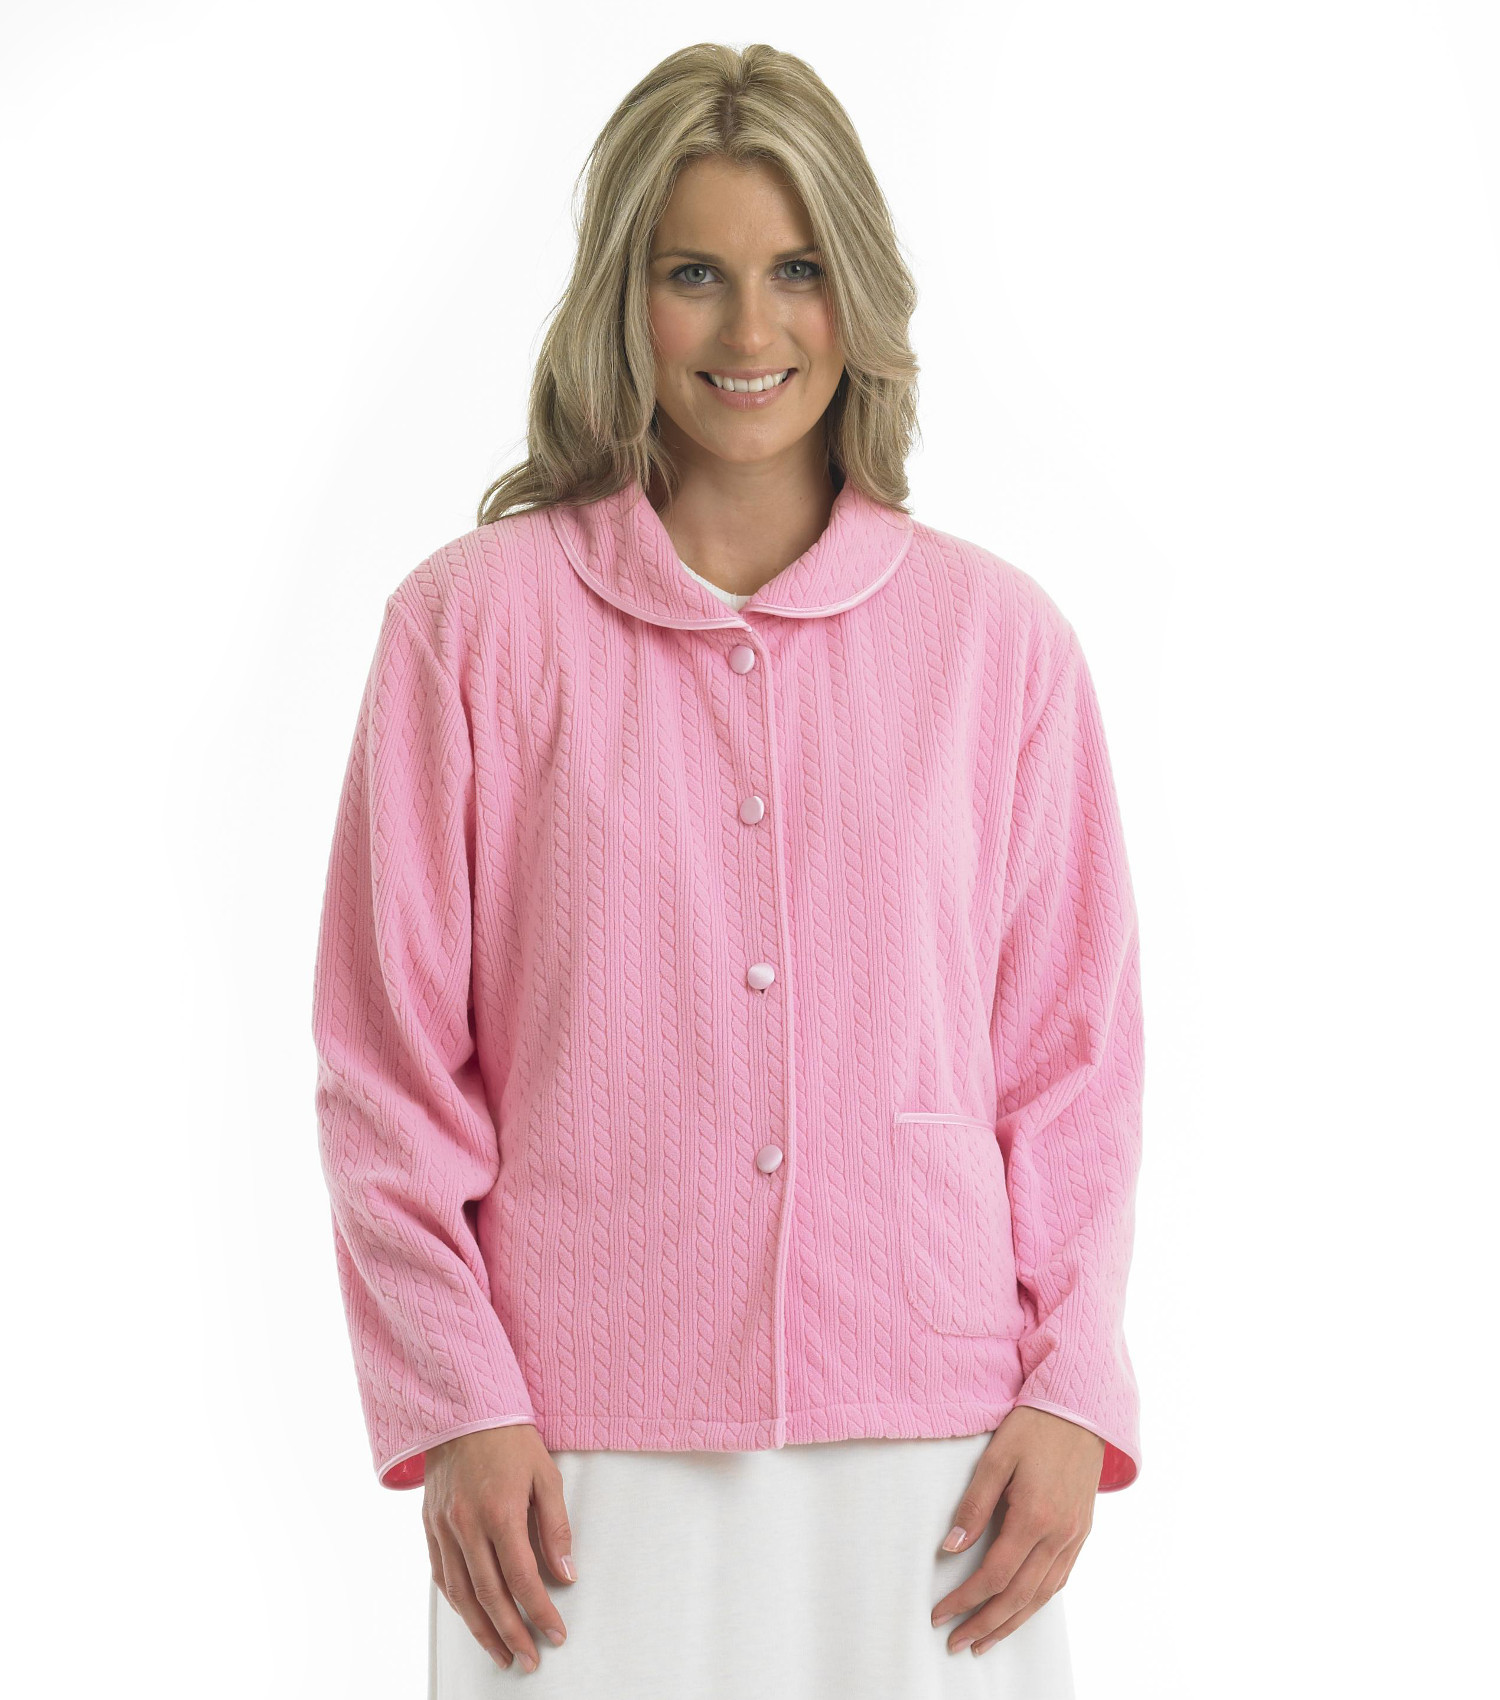 Best prices on Pink ladies jacket pattern in Women's Jackets & Coats online. Visit Bizrate to find the best deals on top brands. Read reviews on Clothing & Accessories merchants and buy with confidence.